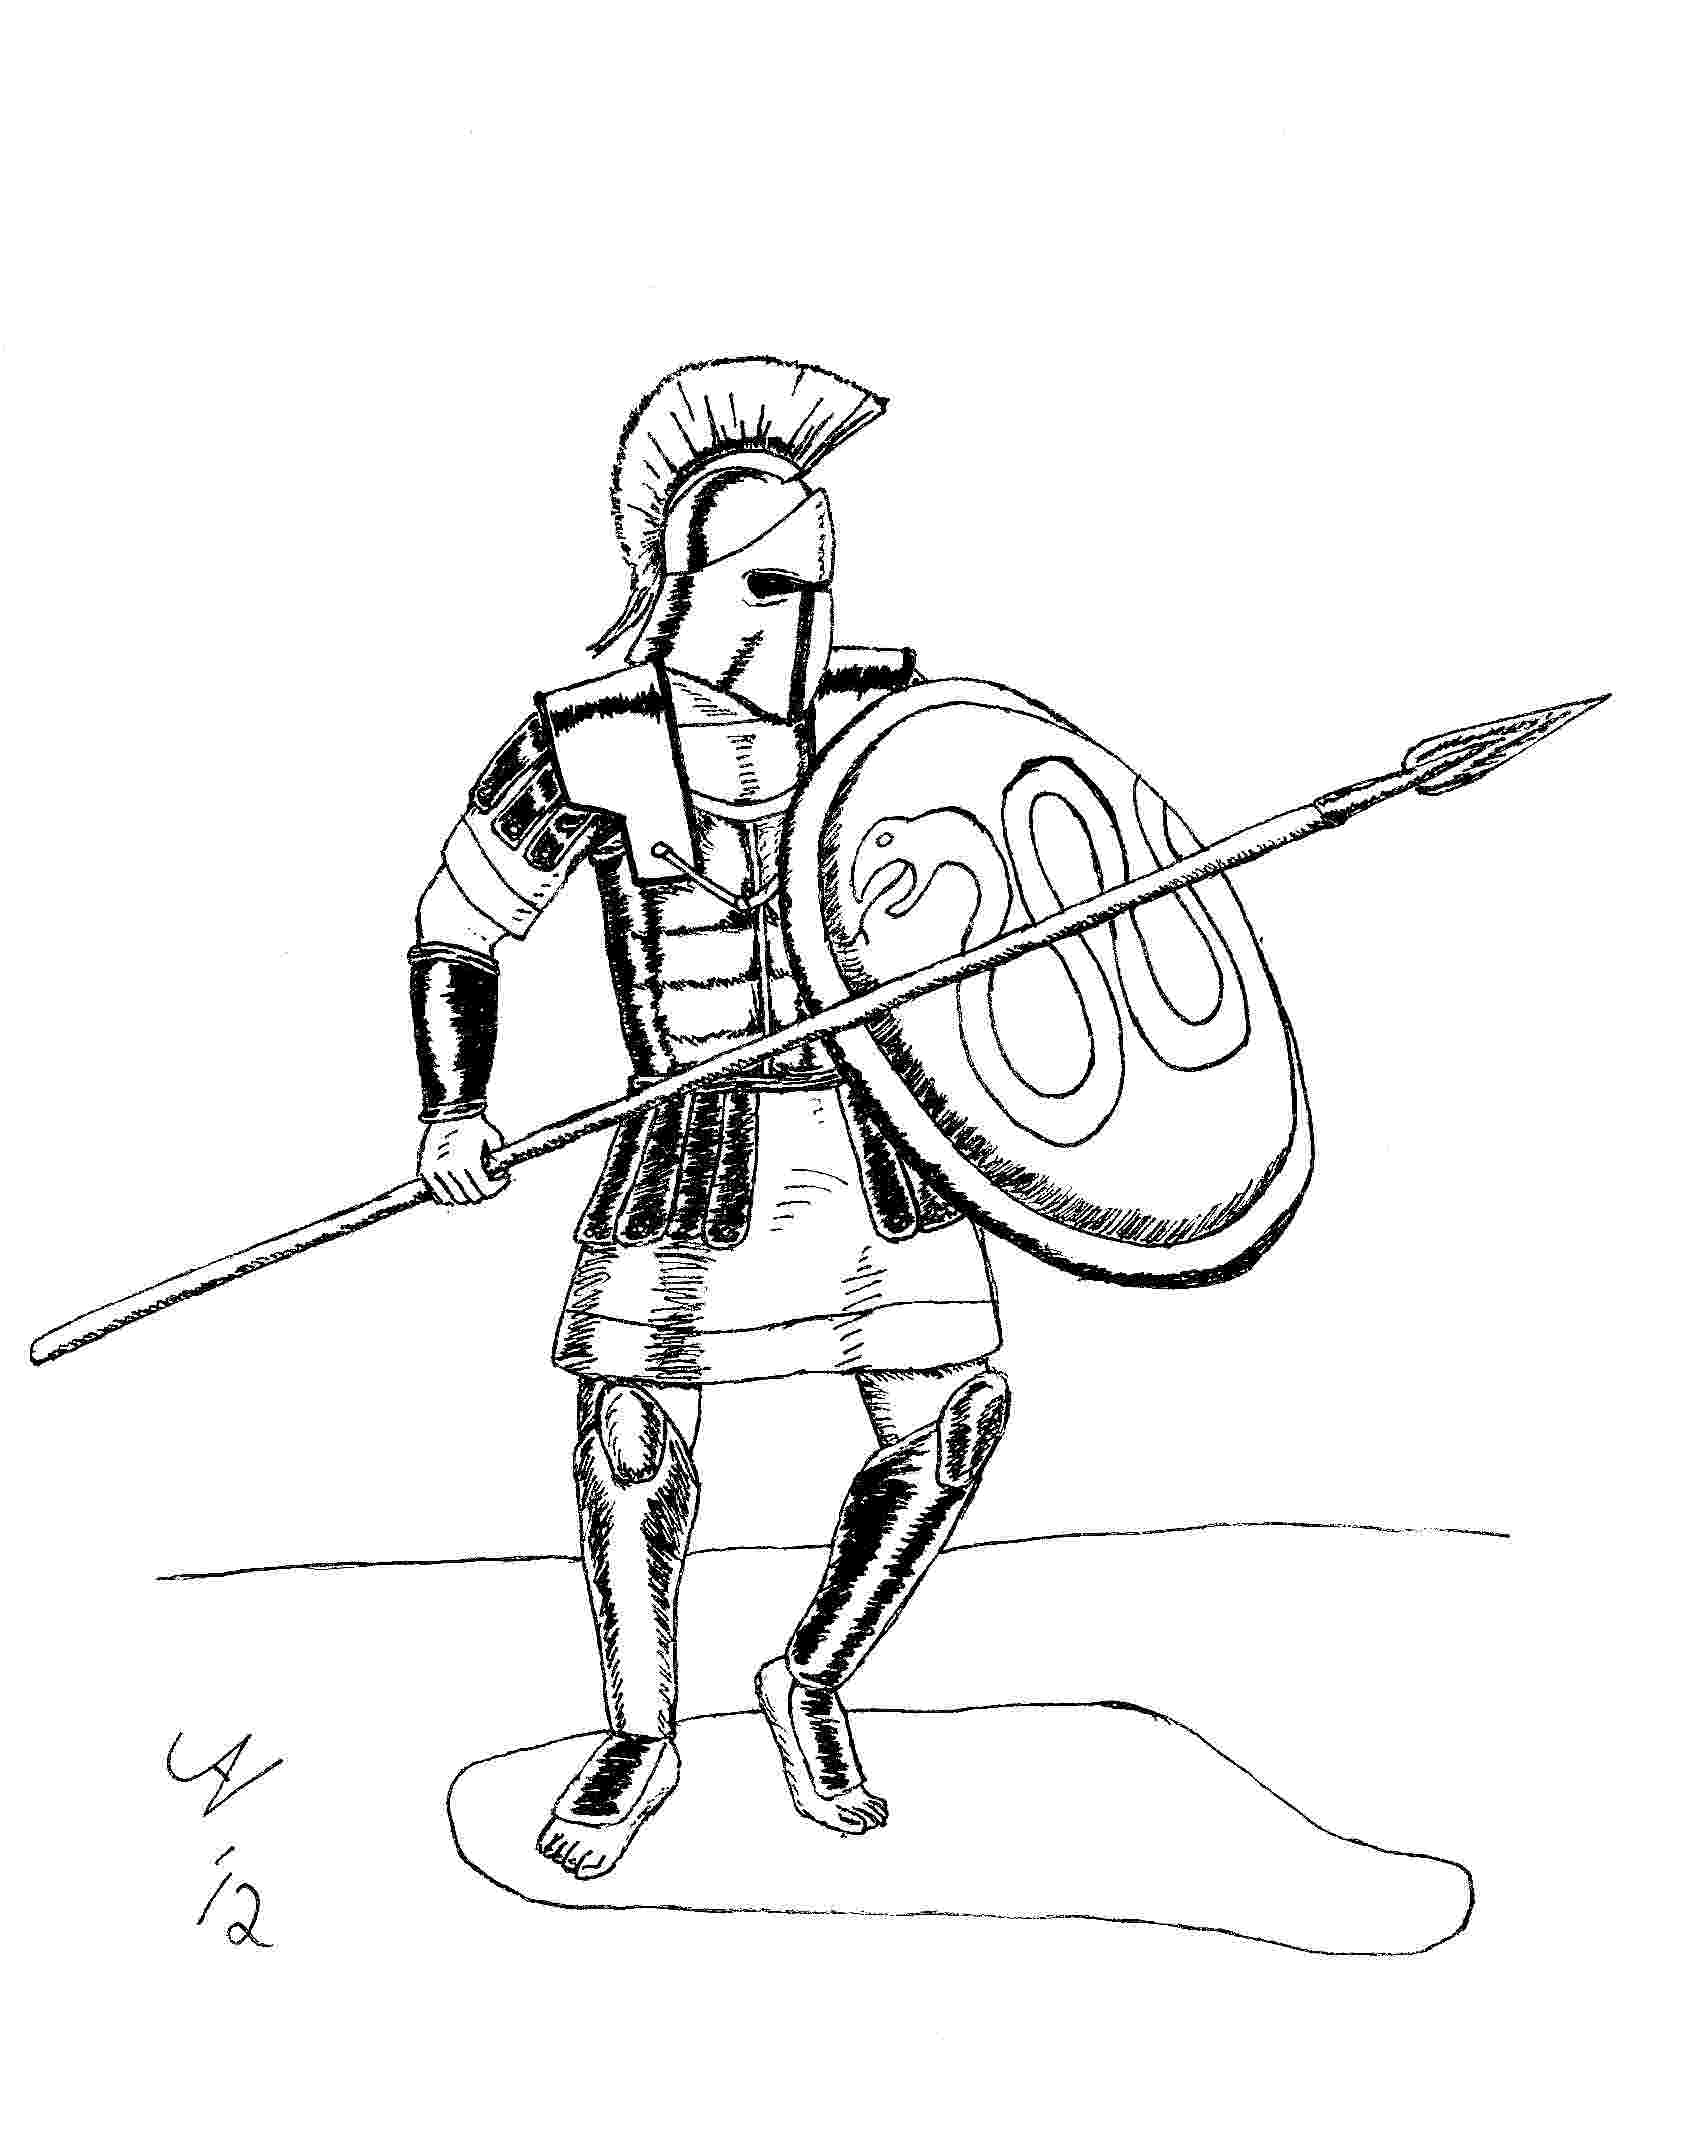 spartan coloring pages spartan warrior super coloring greek in 2019 spartan coloring pages spartan